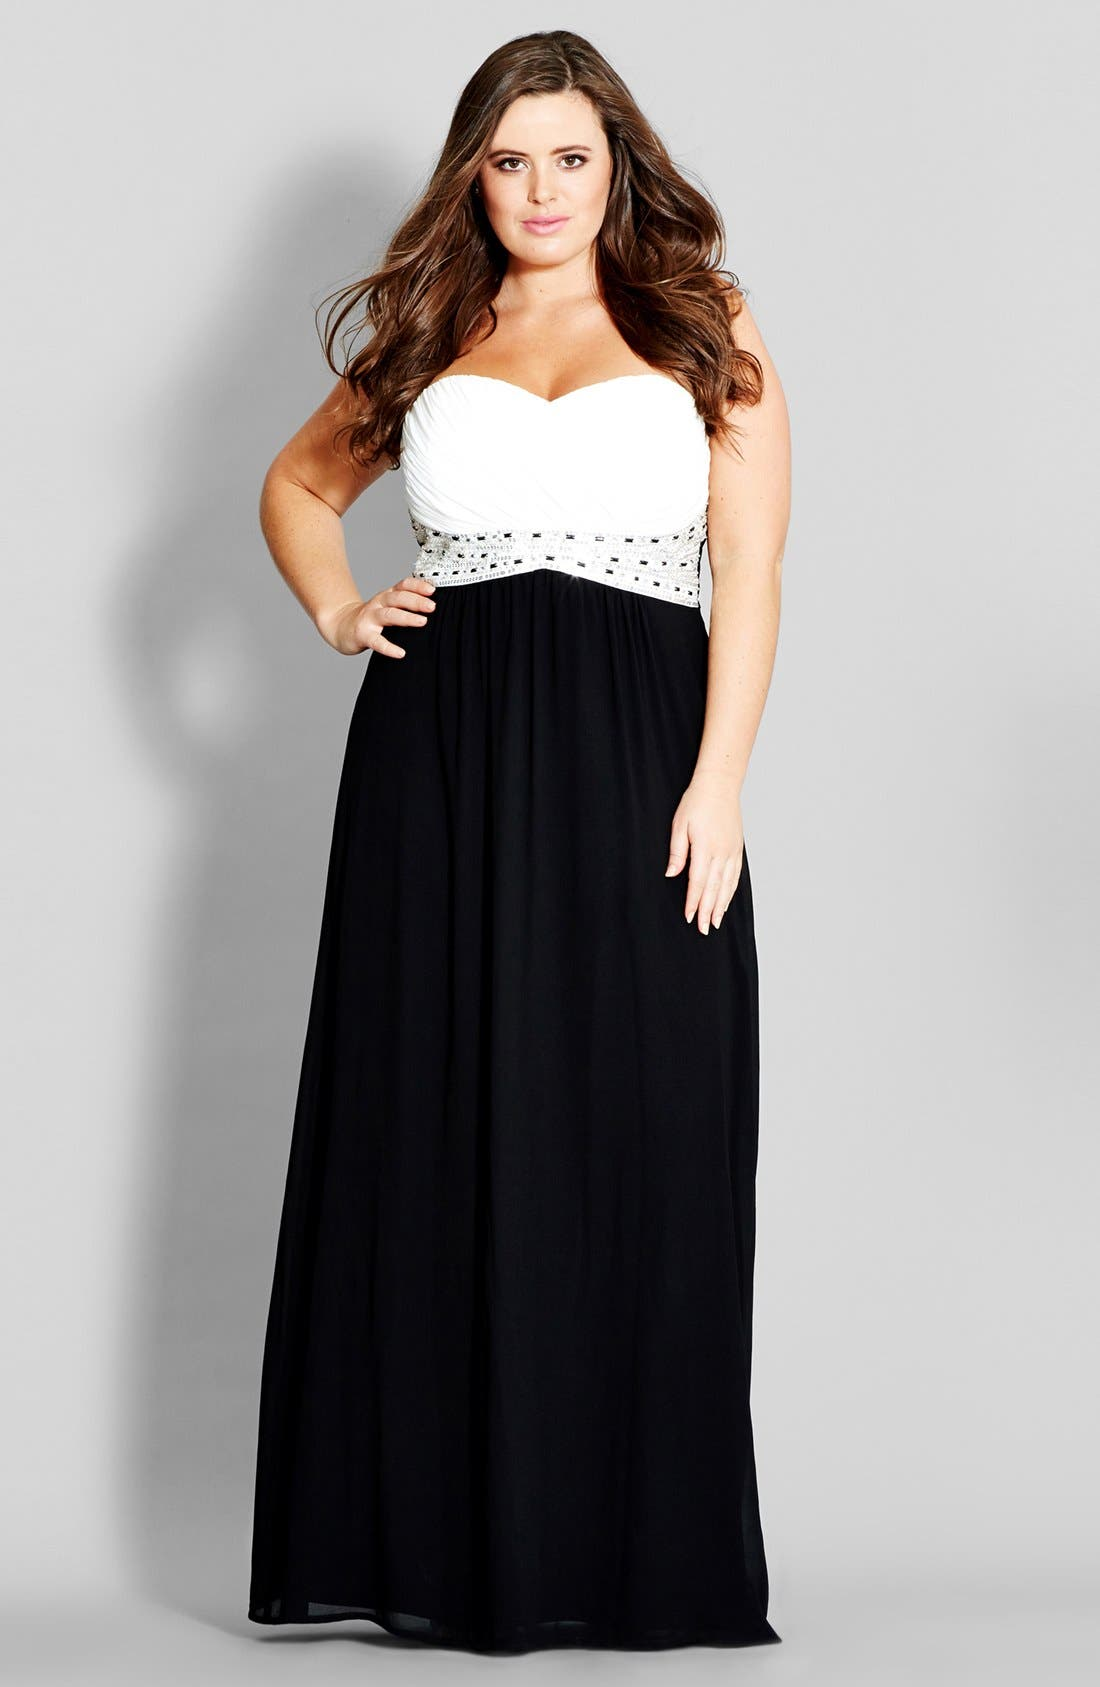 'Contrast Camilla' Embellished Strapless Maxi Dress,                         Main,                         color, 001